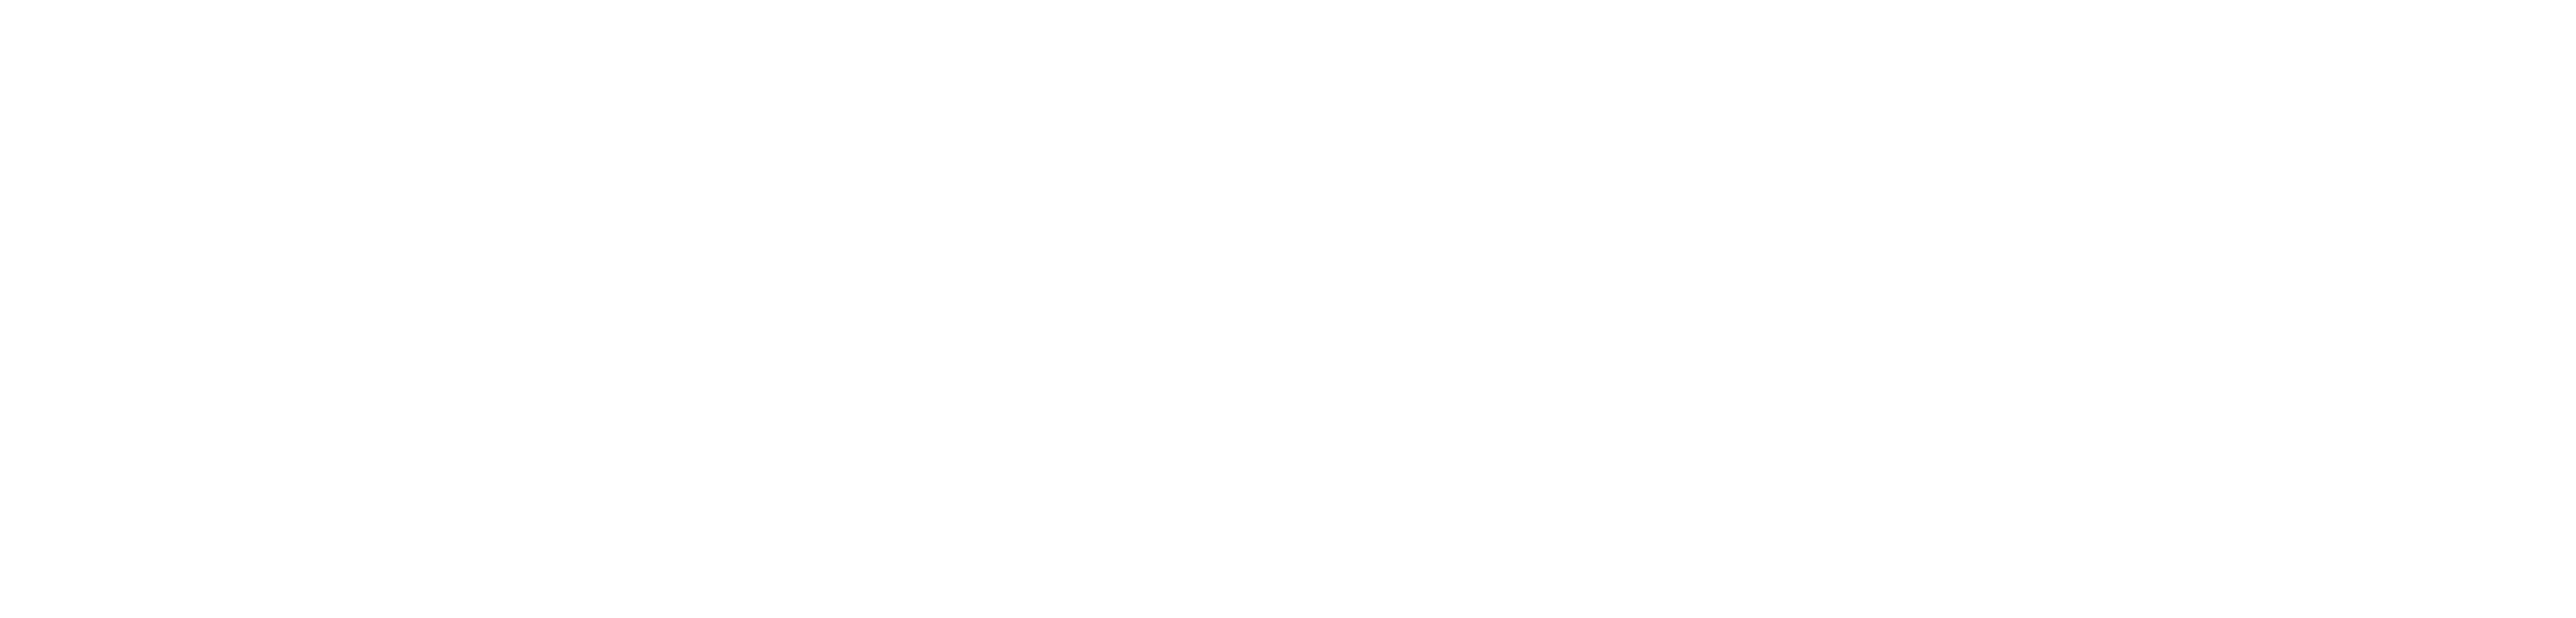 We Want Your Motorcycle